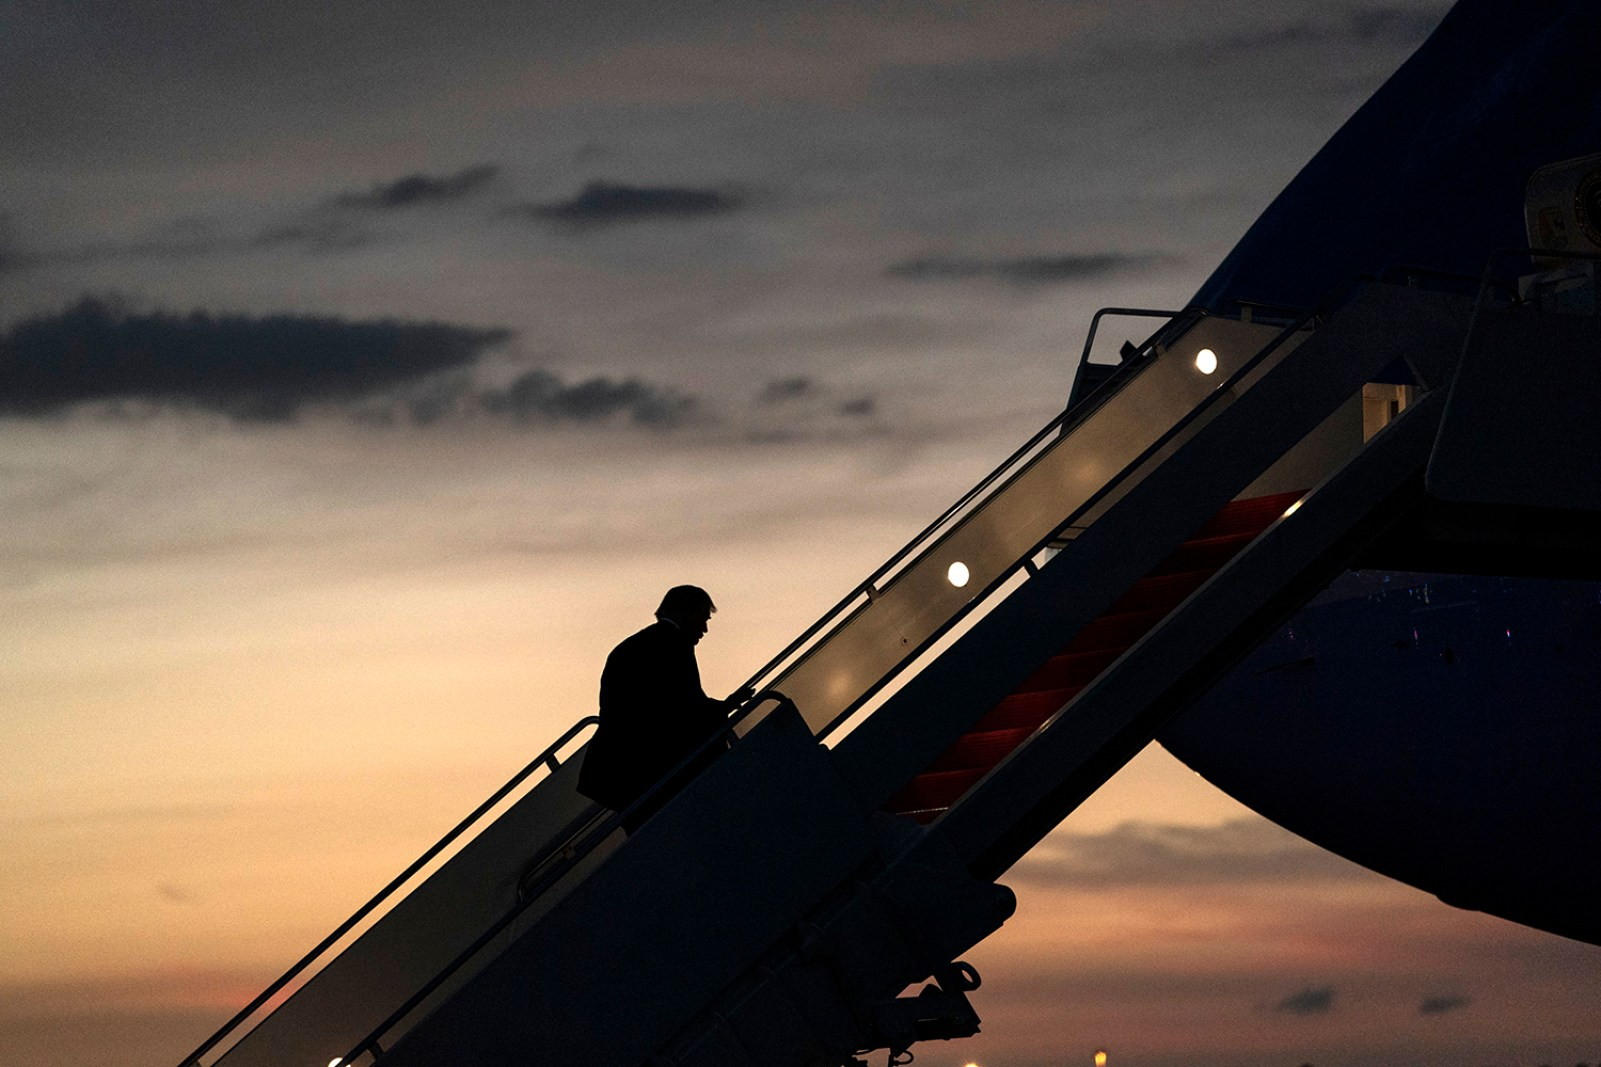 President Trump boards Air Force One for his return flight home from Tampa International Airport in Tampa, Fla. Friday, July 31, 2020, en route to Joint Base Andrews, Md. (Official White House Photo by Joyce N. Boghosian)